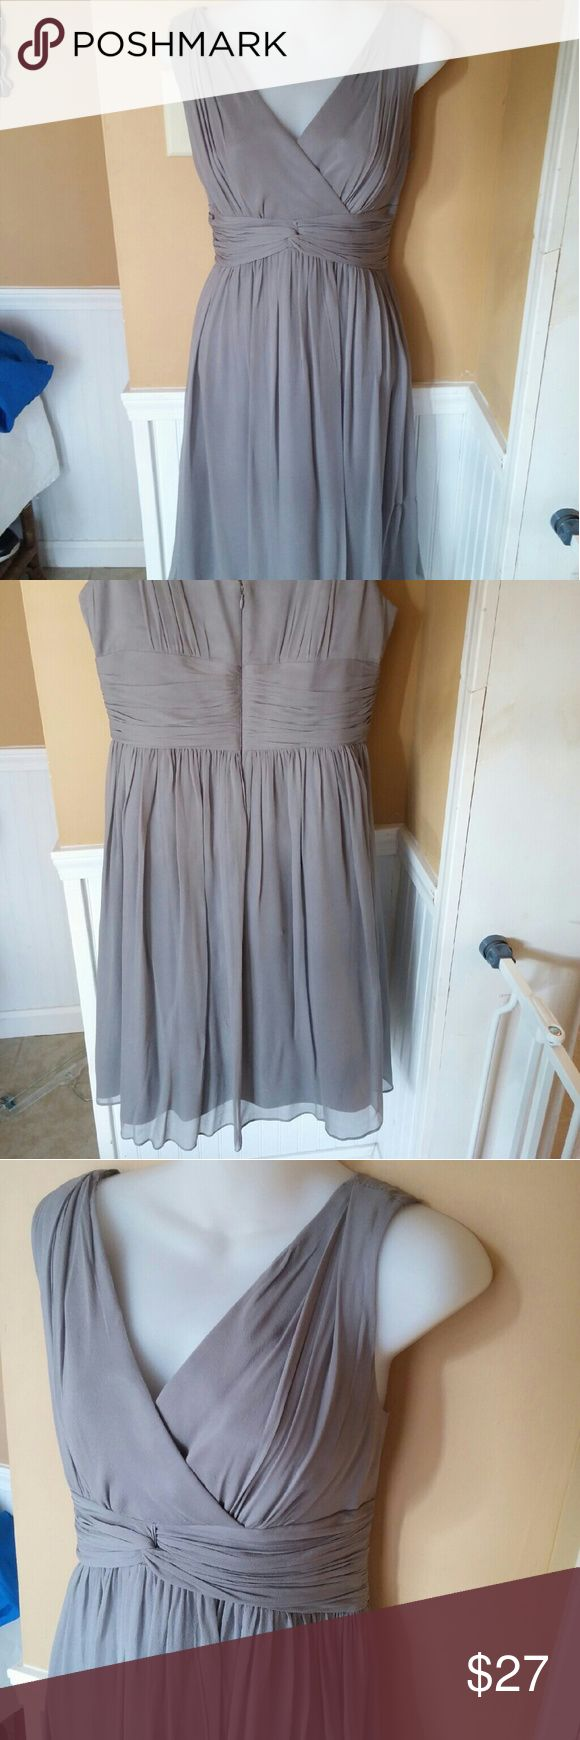 Donna Morgan Dress Gray Tea Length 12 Wedding. Lovely Donna Morgan Wedding or Bridesmaid silk dress!  Silk chiffonexterior and acetate lining.  Tea Length.  Excellent condition non smoking household.  Tiny scuff on surface of silk on skirt not very noticeable.  Bust 39 Waist 35 Length shoulder to hem 40 Donna Morgan Dresses Wedding